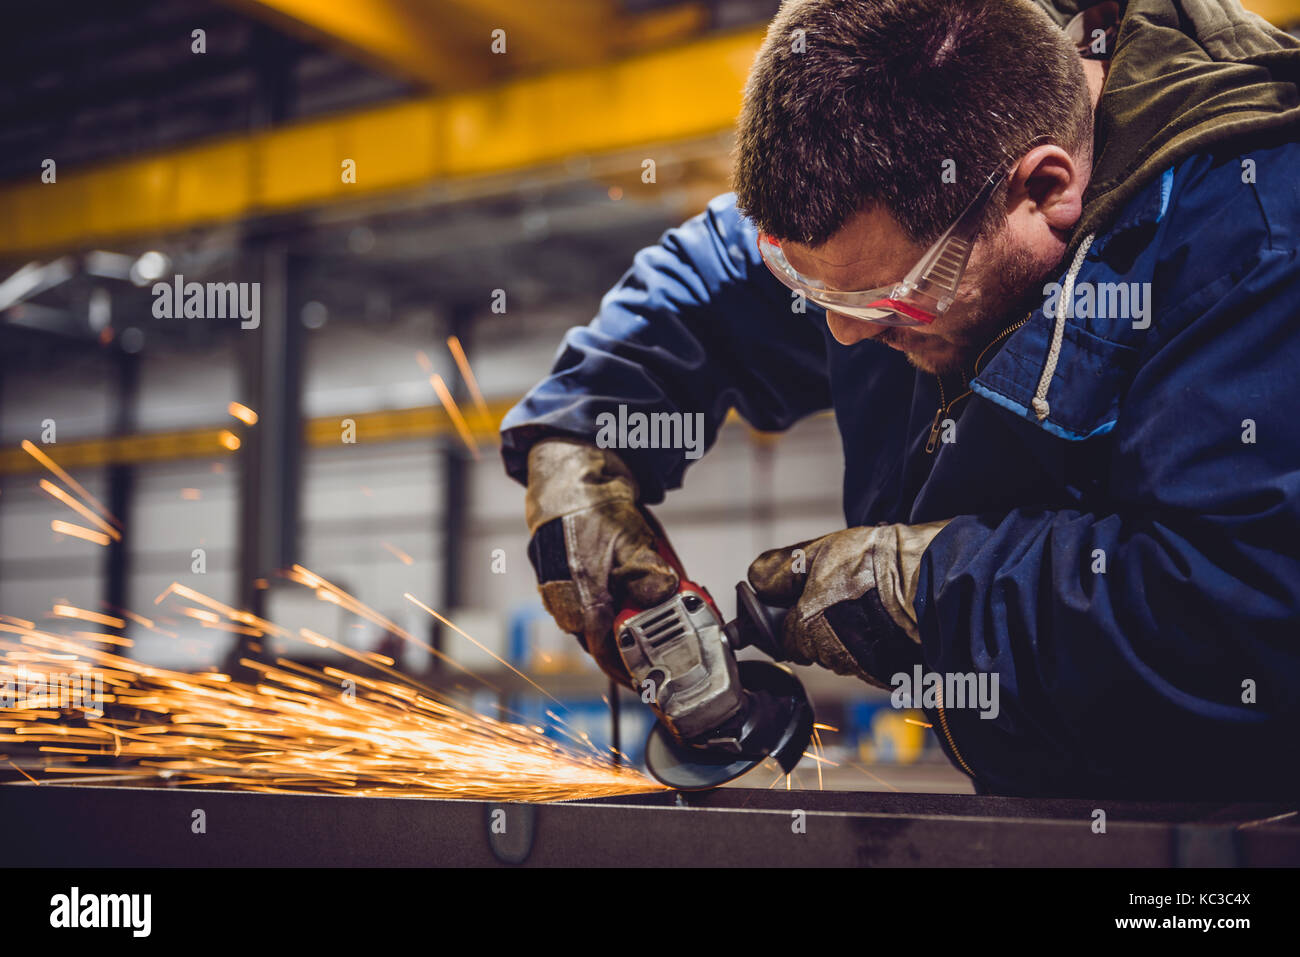 Worker Using Angle Grinder in Factory and throwing sparks - Stock Image